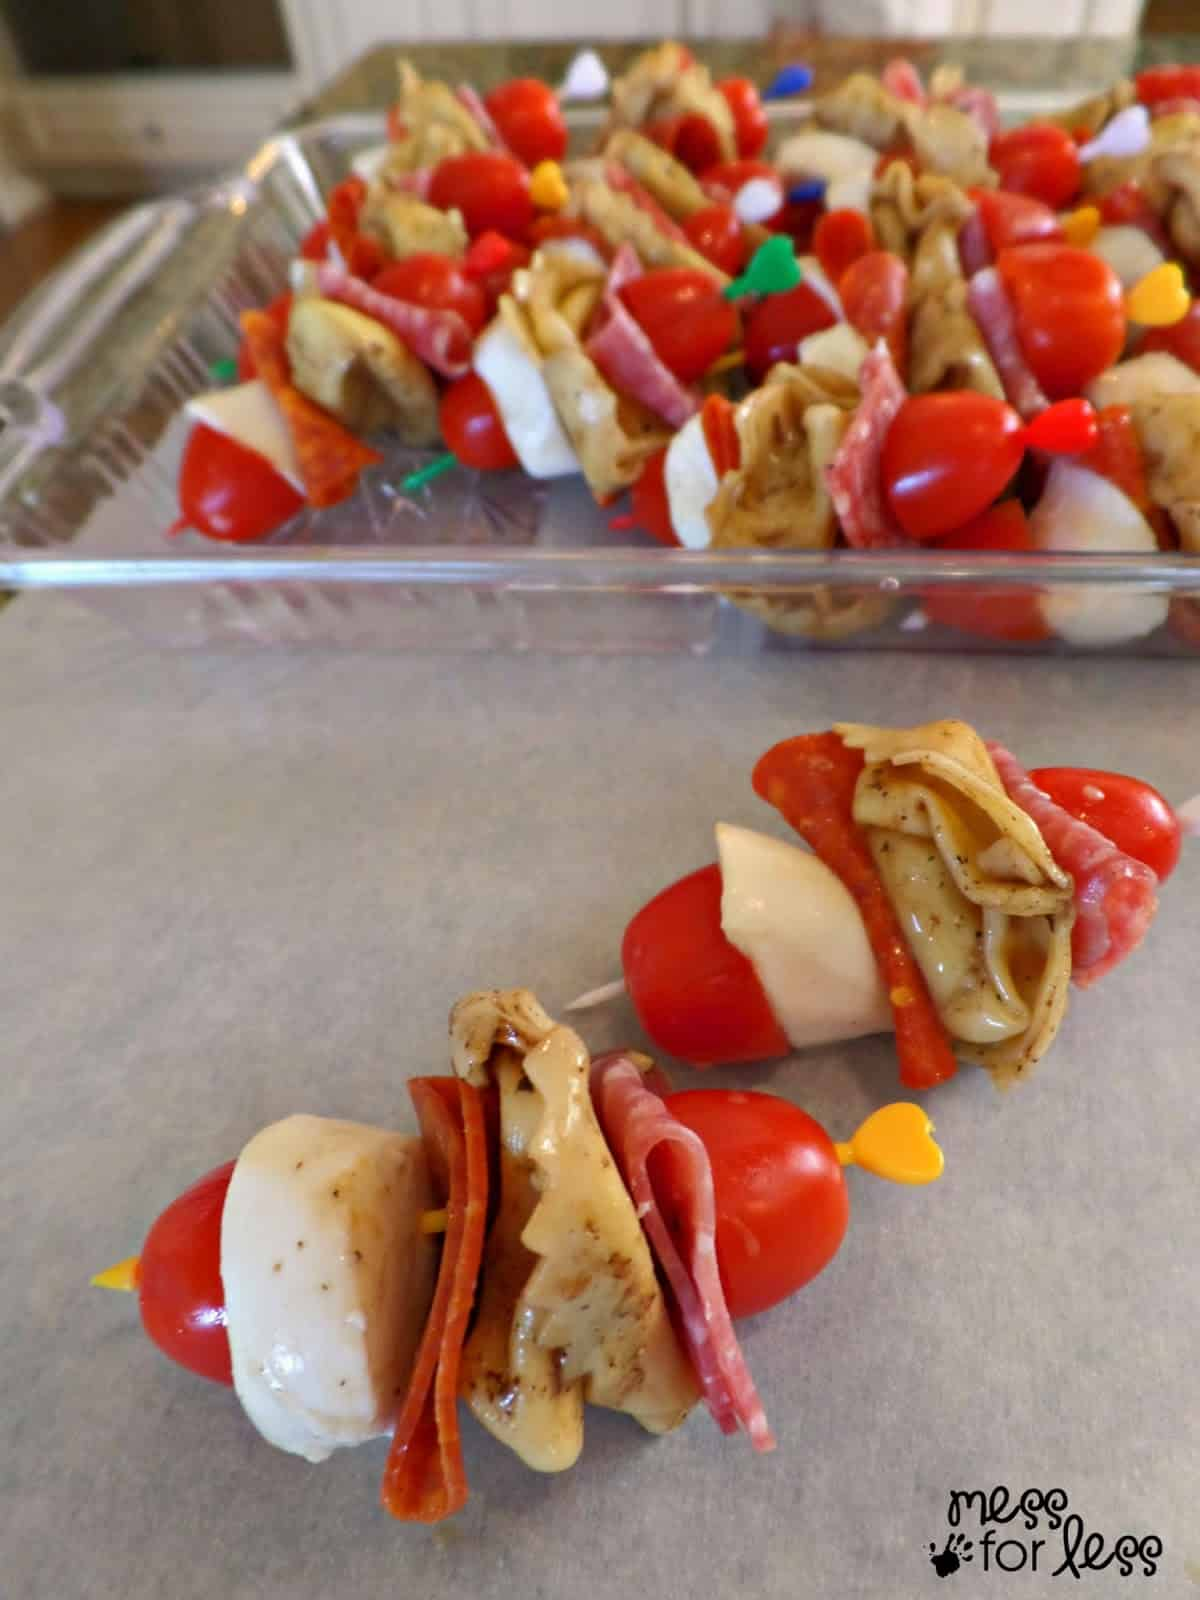 Italian Appetizers - These Tortellini Salad Skewers are perfect for your next gathering. Each bit is filled with yummy Italian flavors!